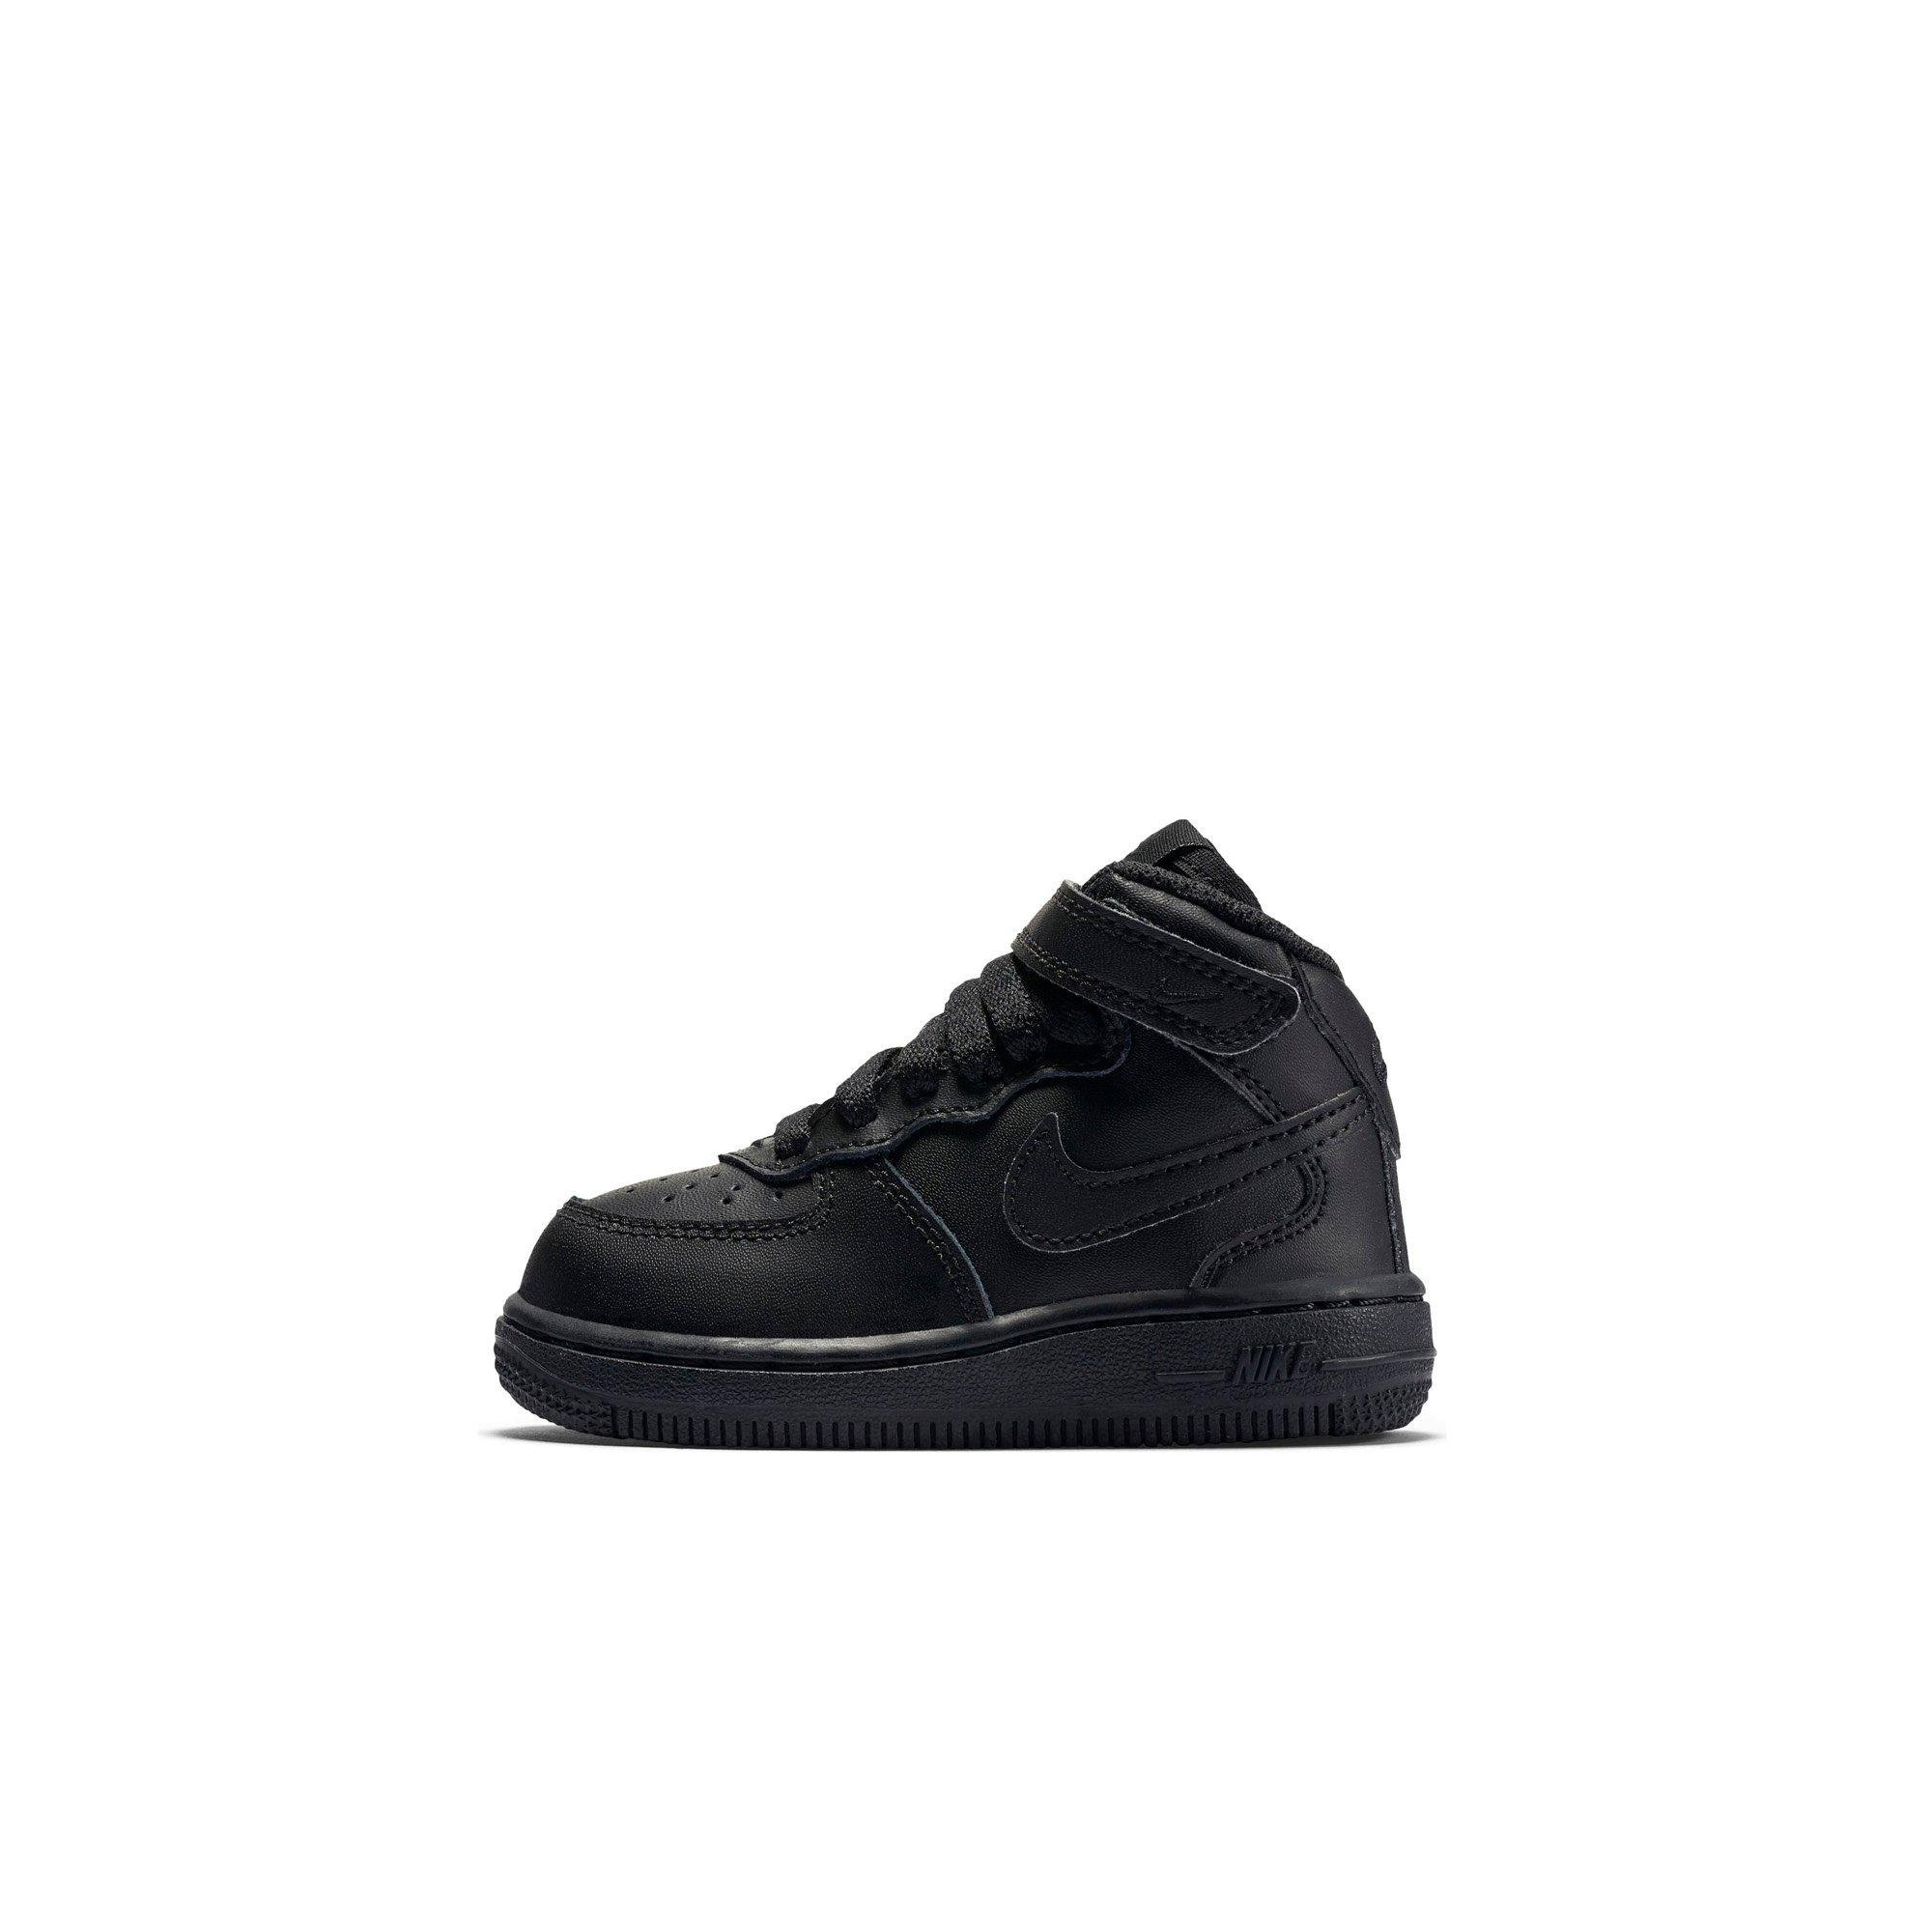 detailed look 0141c 2adae Nike Air Force 1 Mid Toddler Kids u0027 Basketball Shoes - Main Container  Image 2